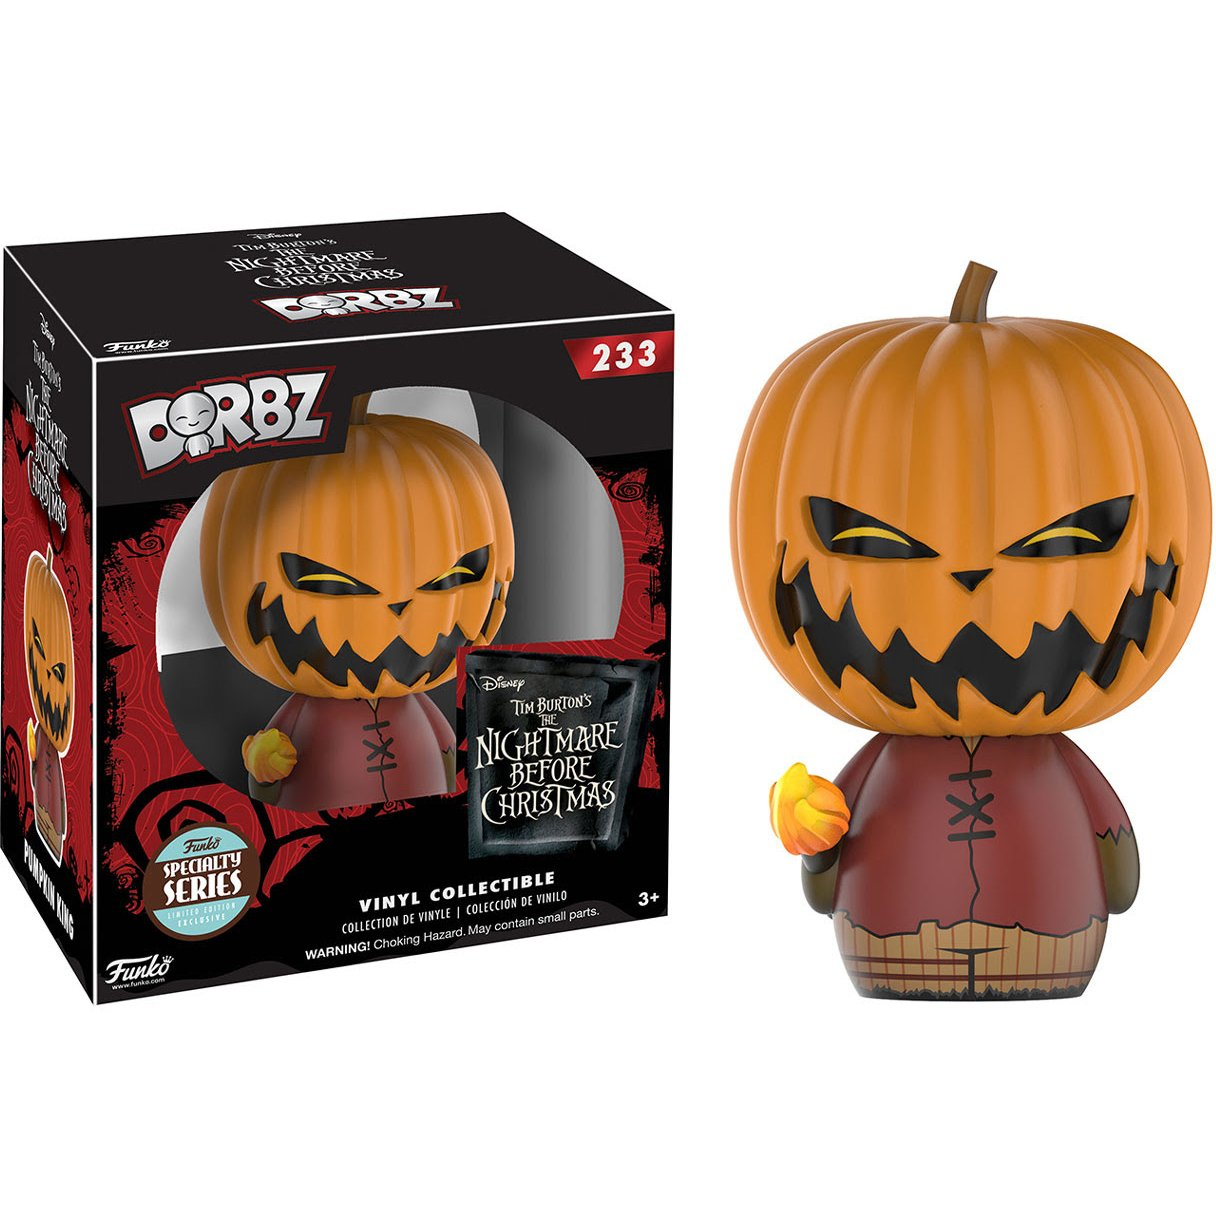 Amazon.com: Disney Pumpkin King (Specialty Series): Funko Dorbz x ...